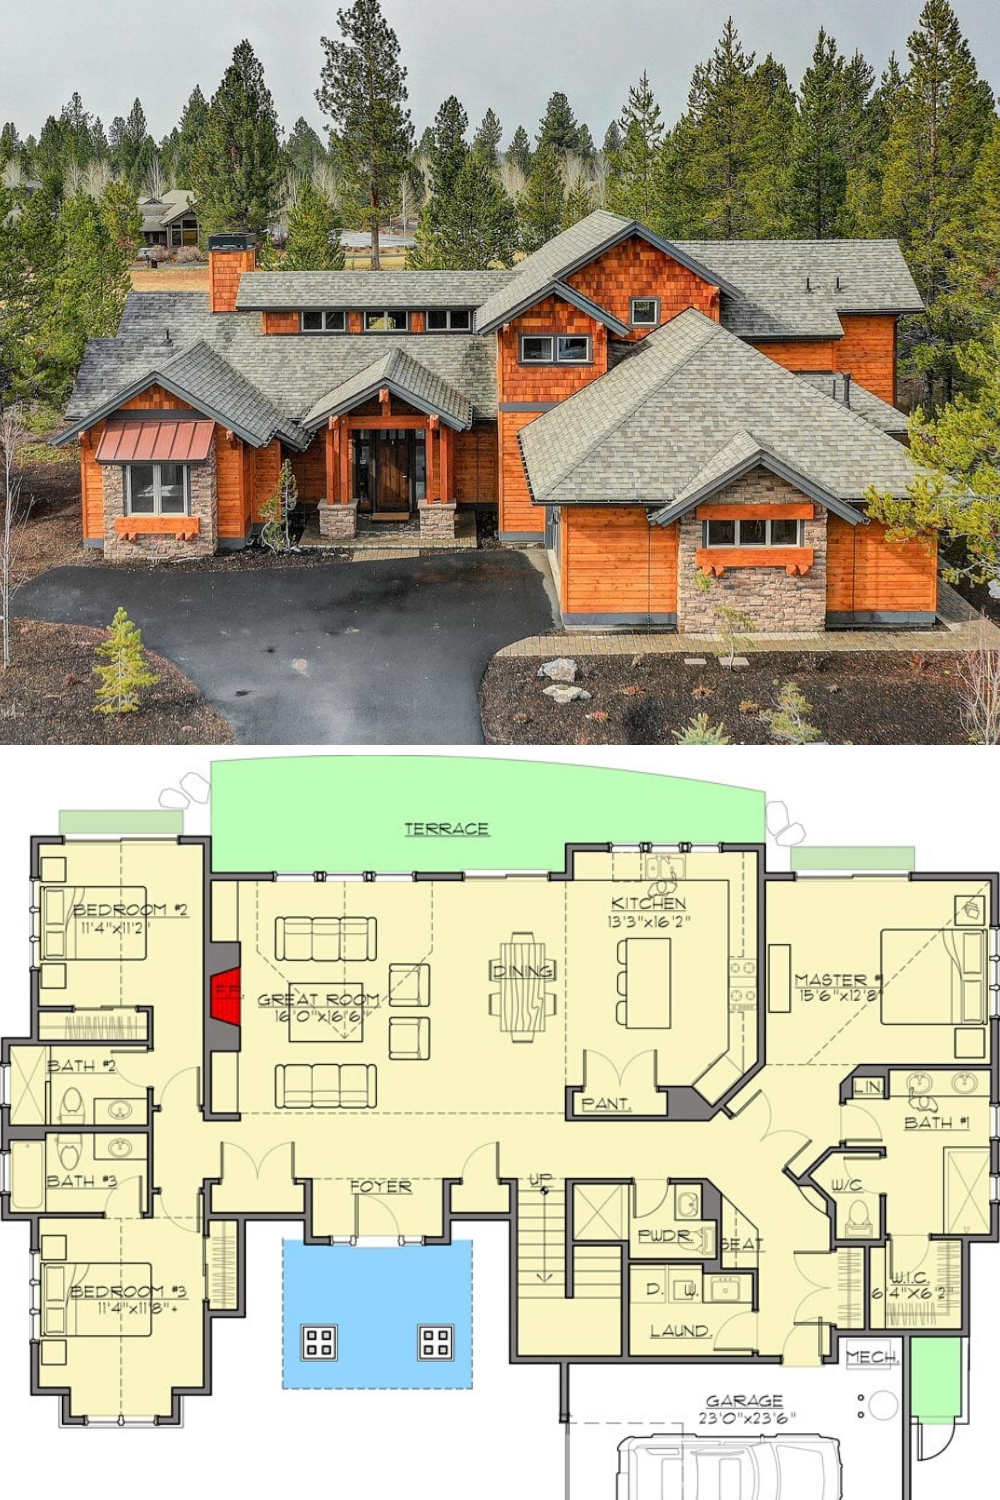 4 Bedroom Two Story Mountain Craftsman Home With Vaulted Upstairs Floor Plan Craftsman House Plans Craftsman House Mountain Home Exterior